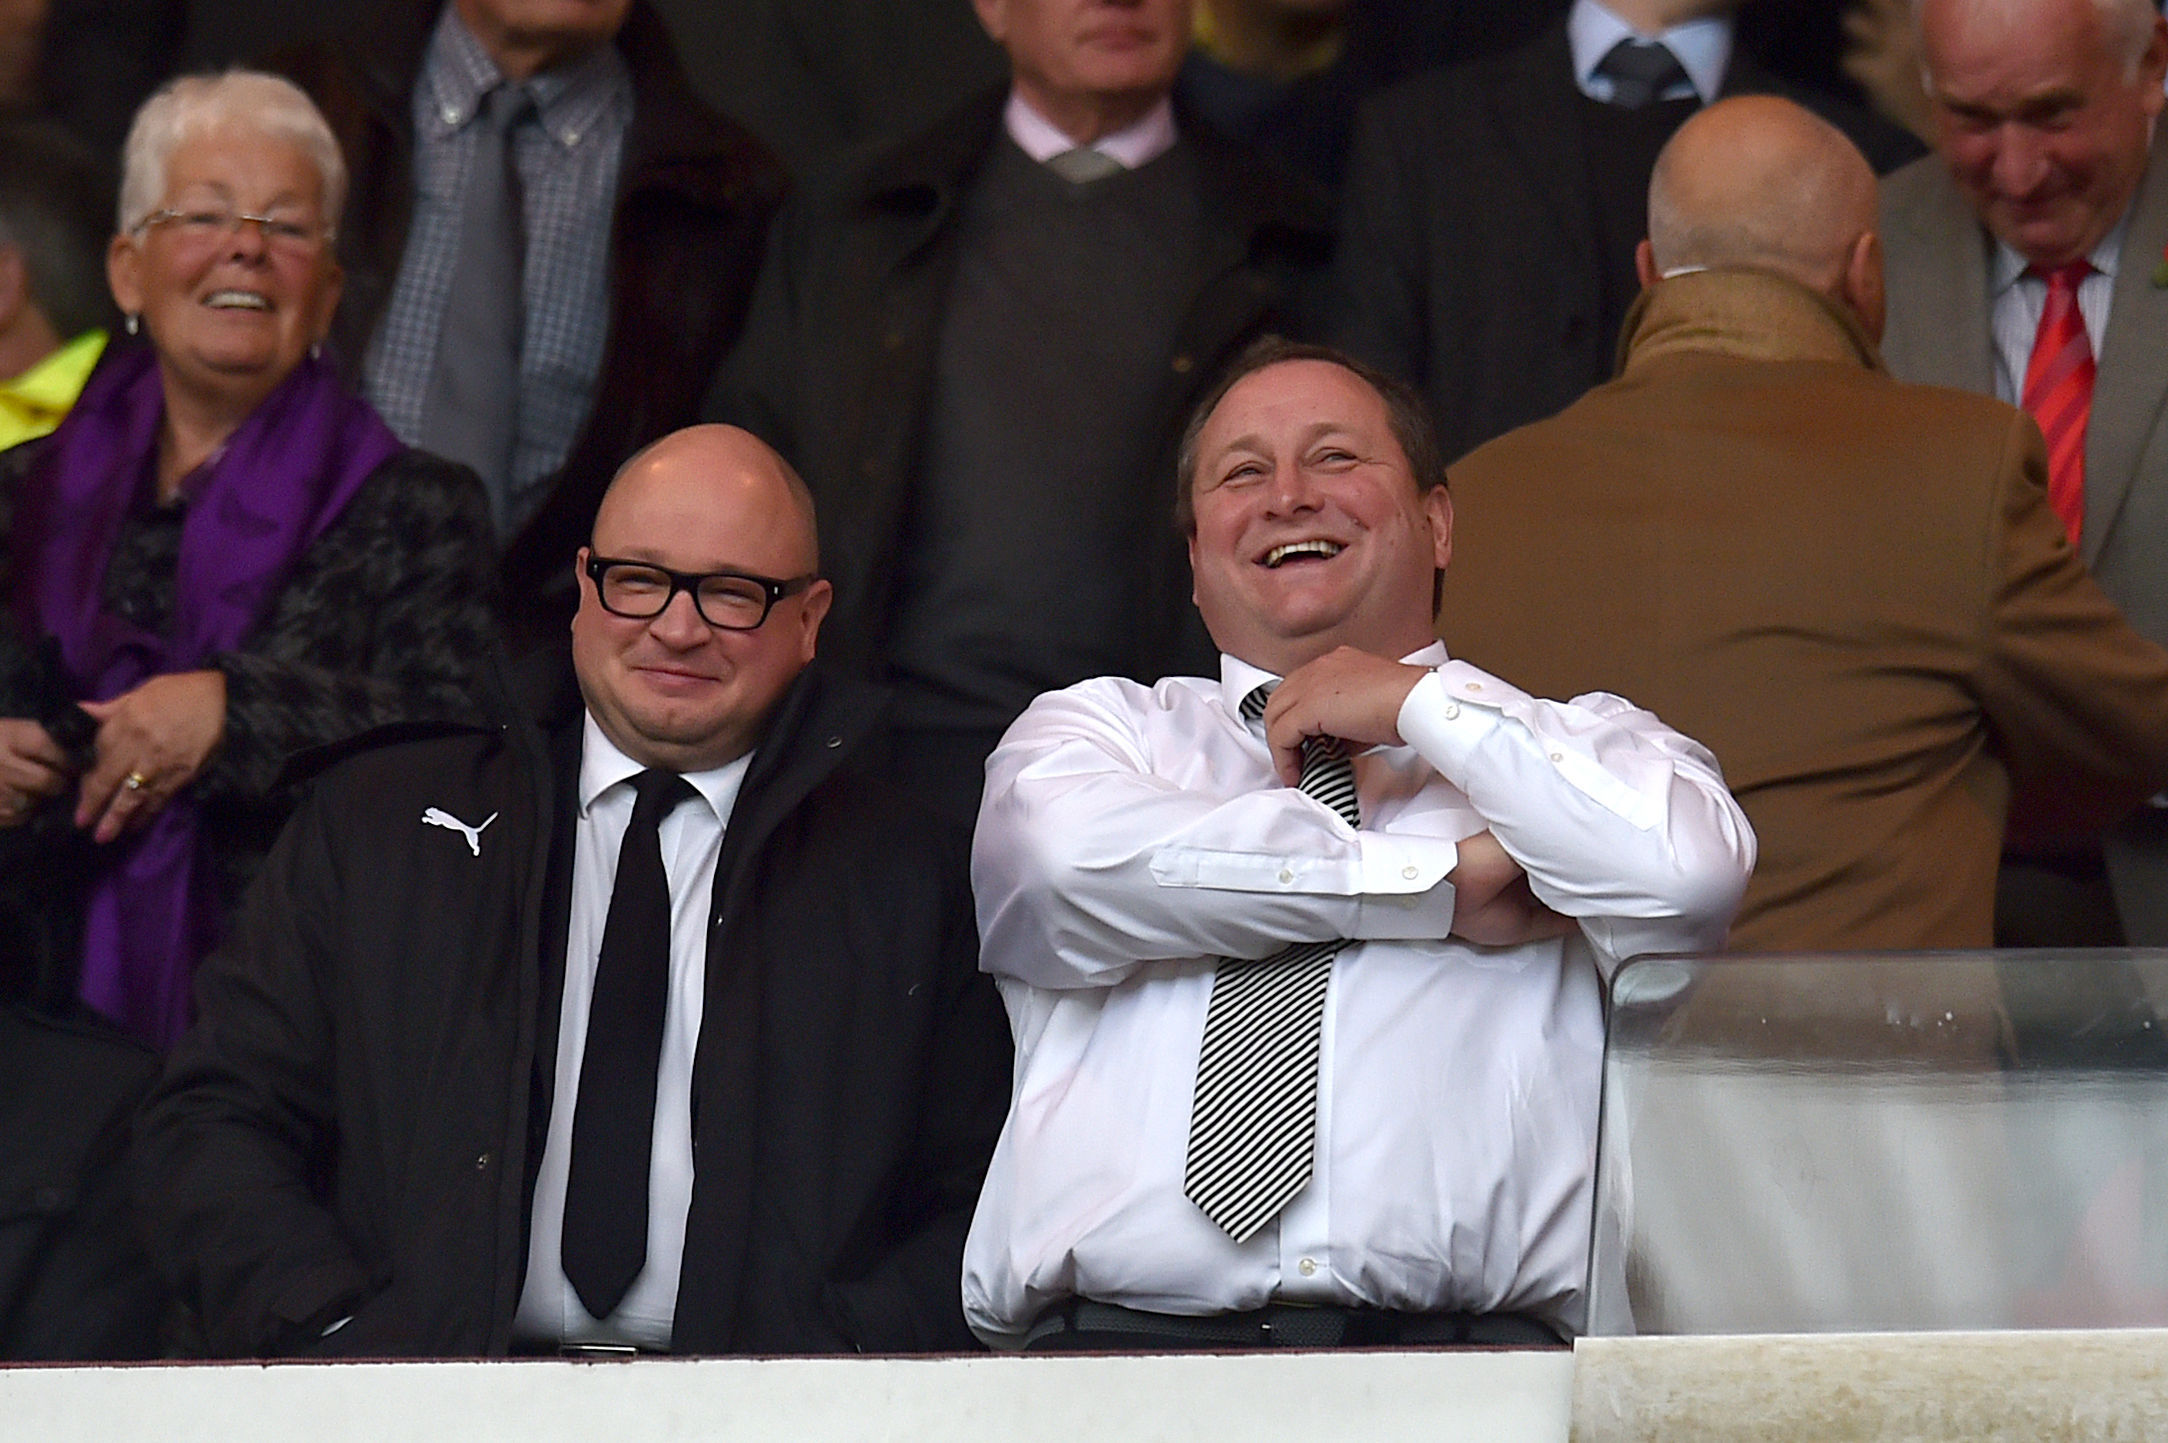 WANTING TO SELL: Newcastle United owner Mike Ashley